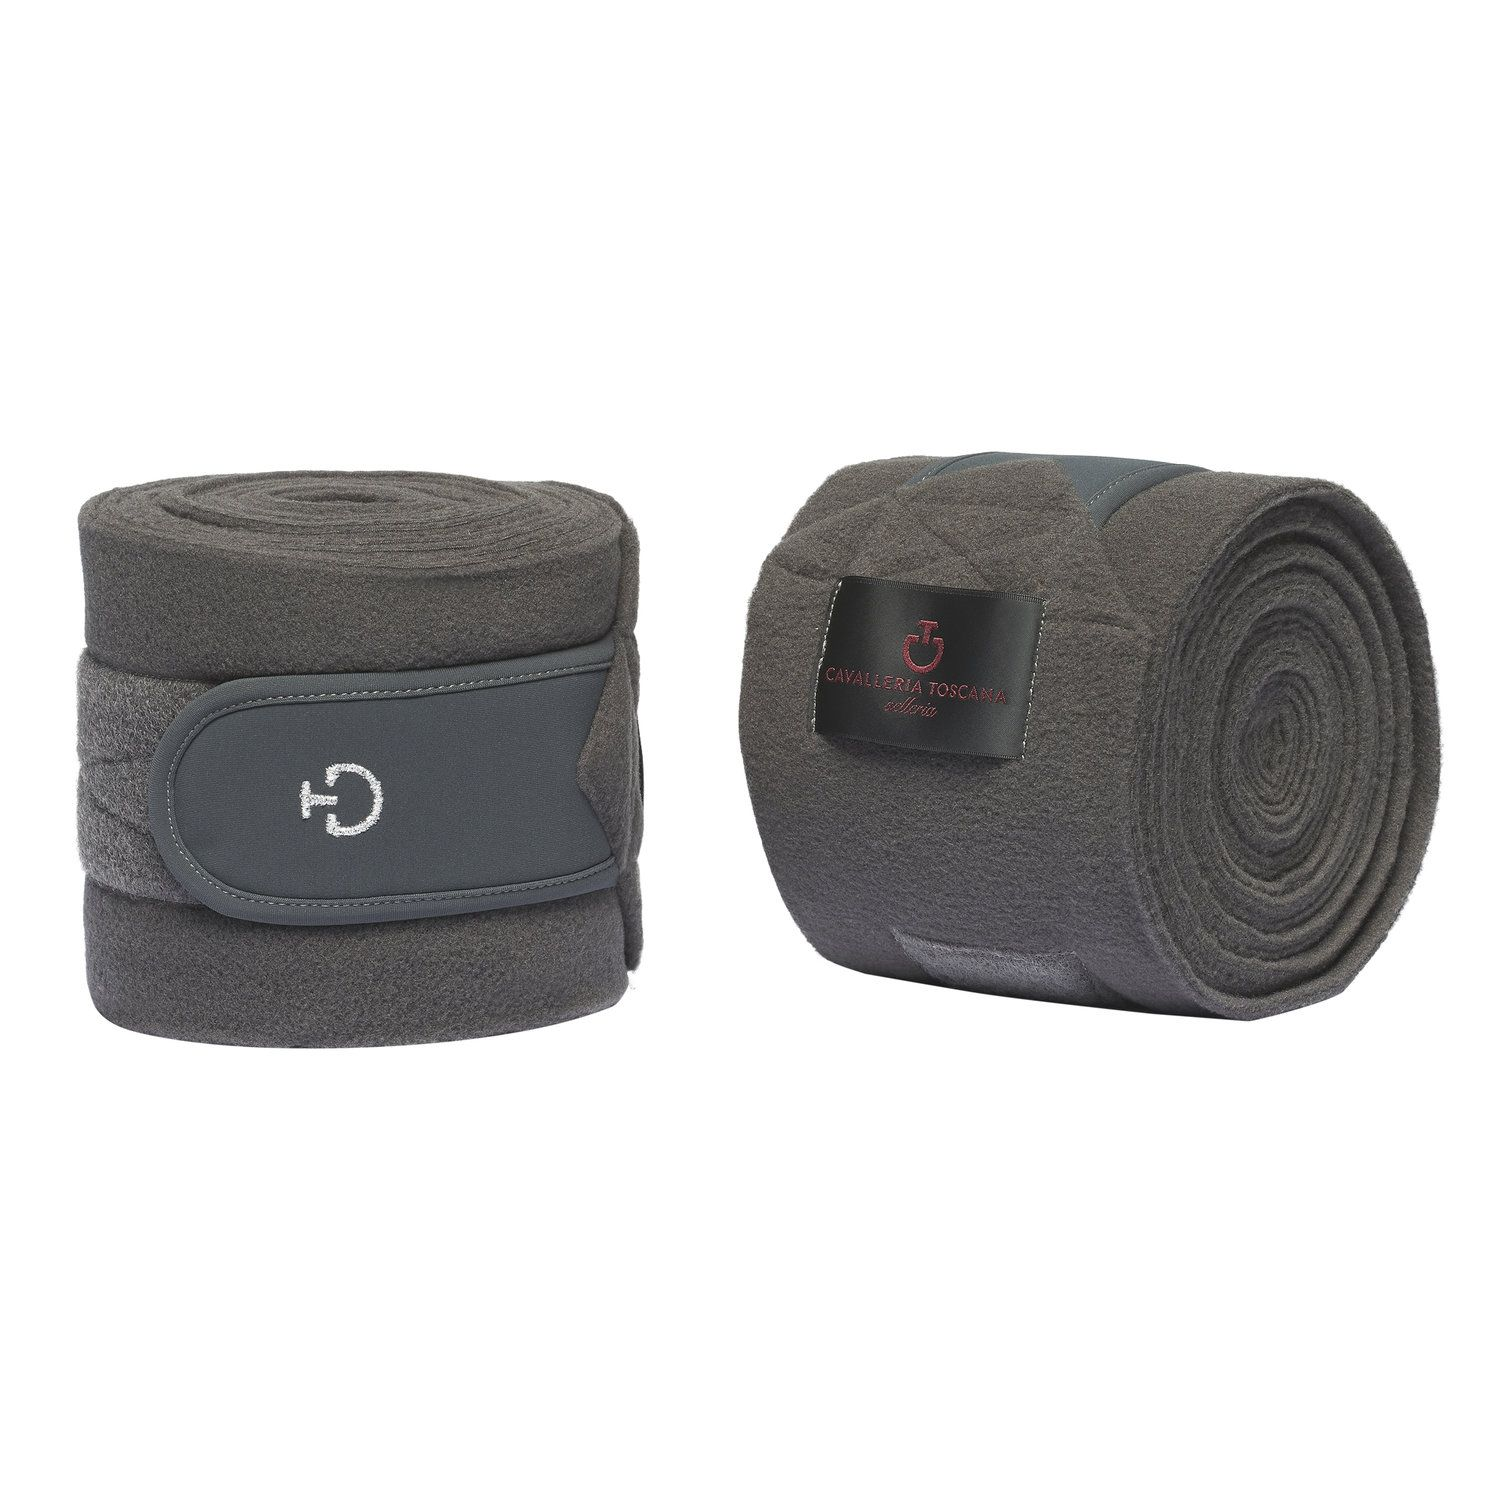 Set of 2 fleece bandages with mesh logo